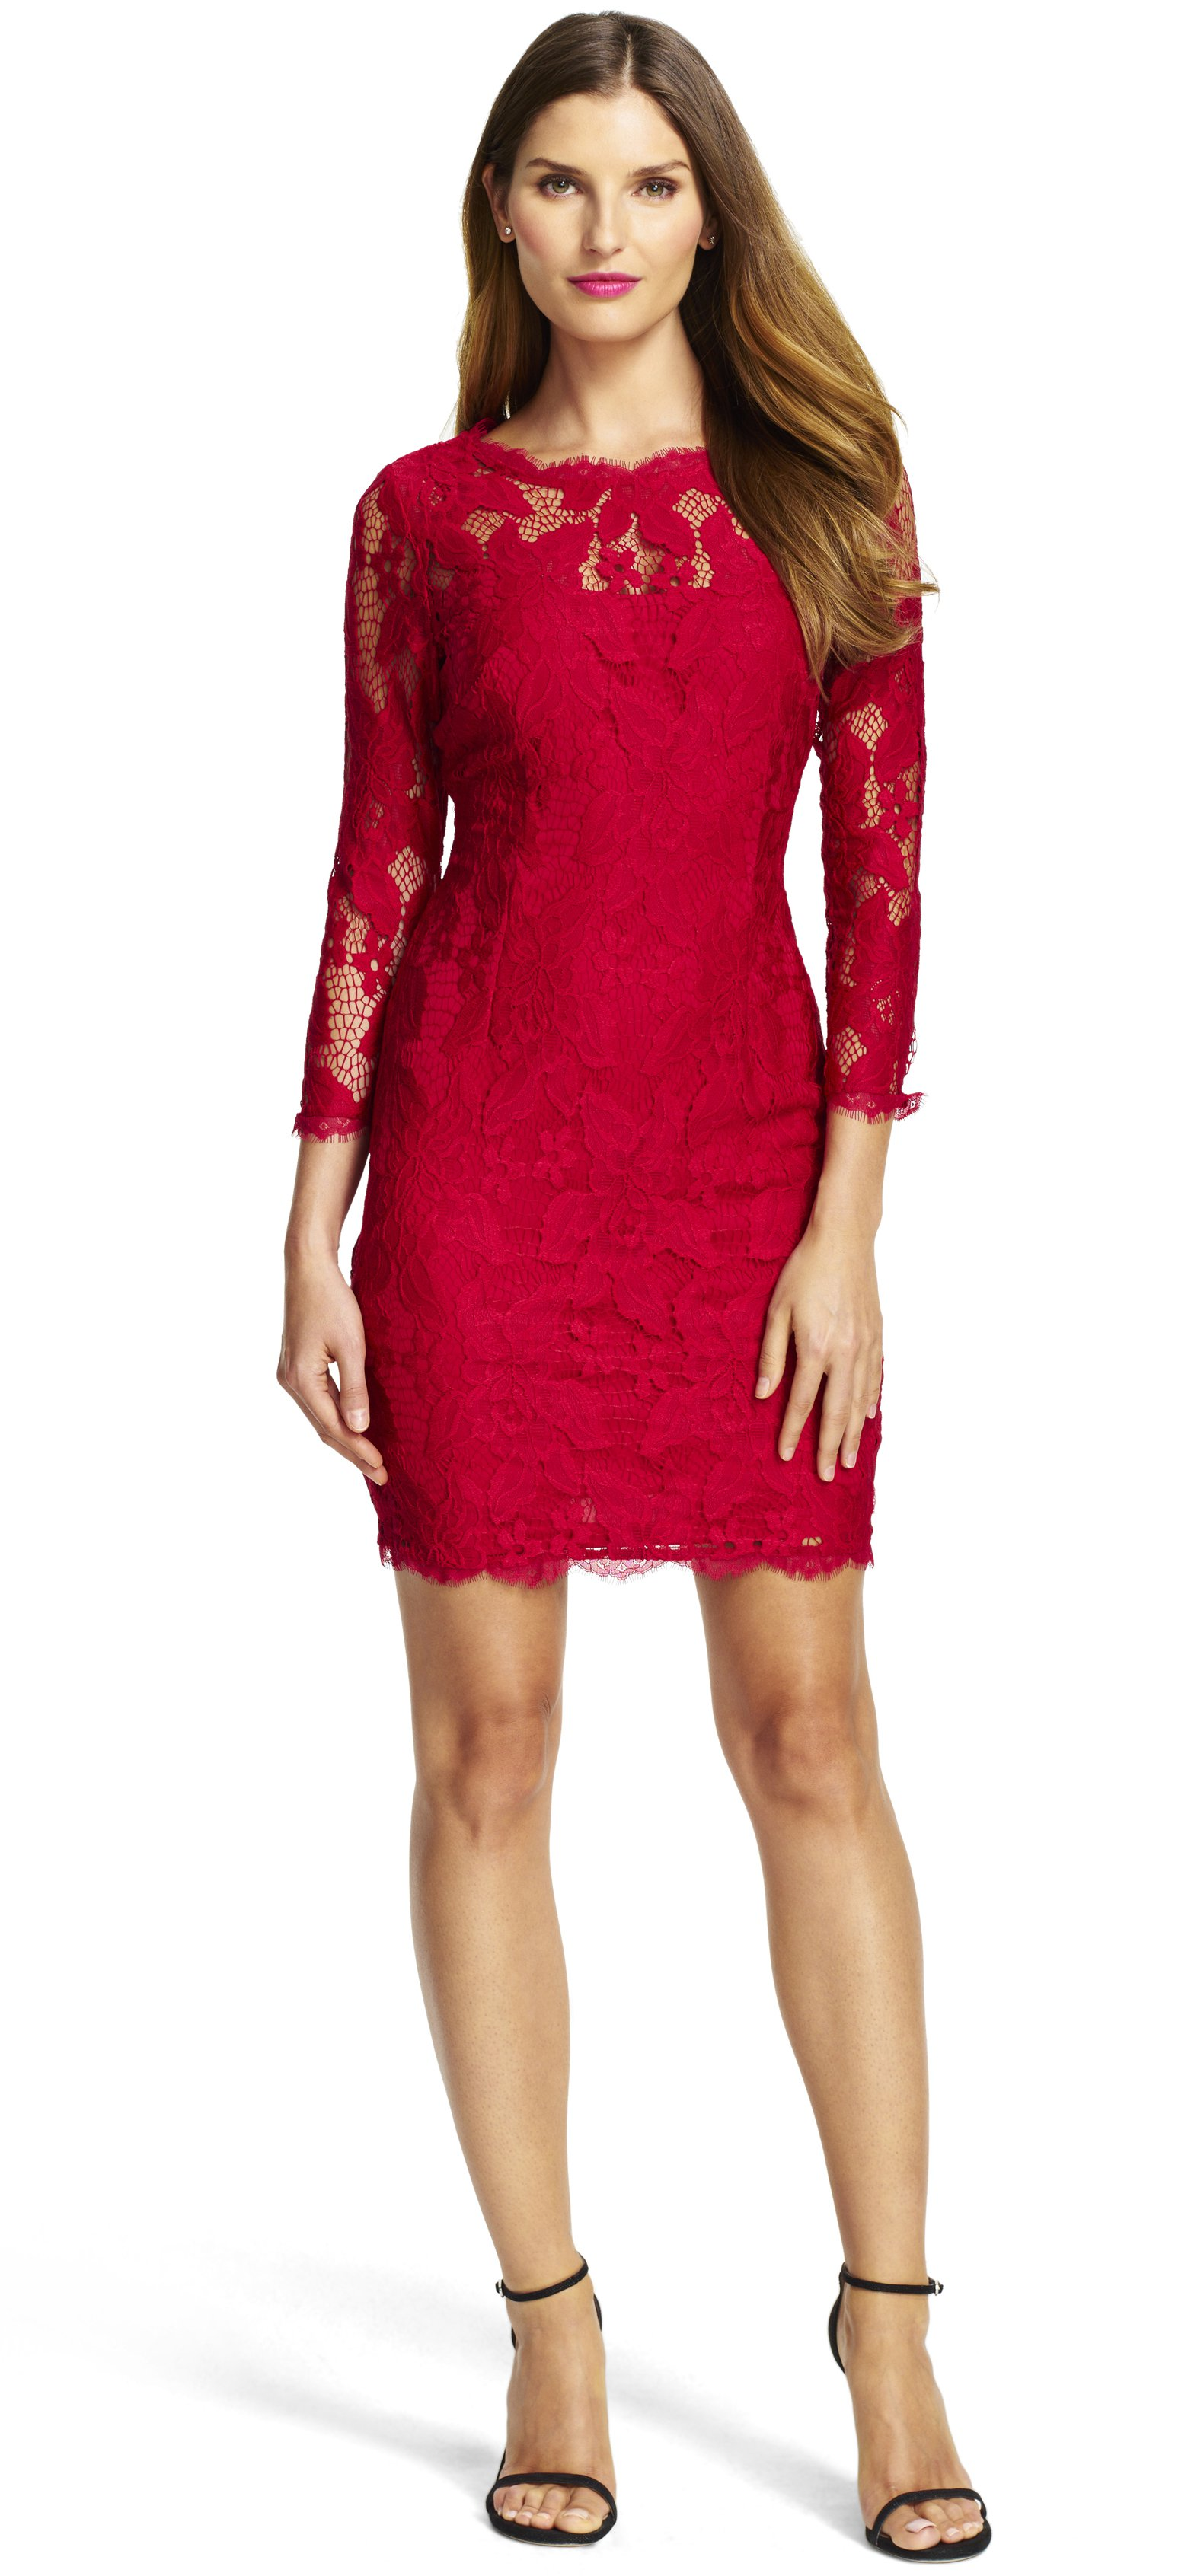 LONG SLEEVED COCKTAIL DRESSES long sleeve lace cocktail dress with illusion neck ... MLPZMBD